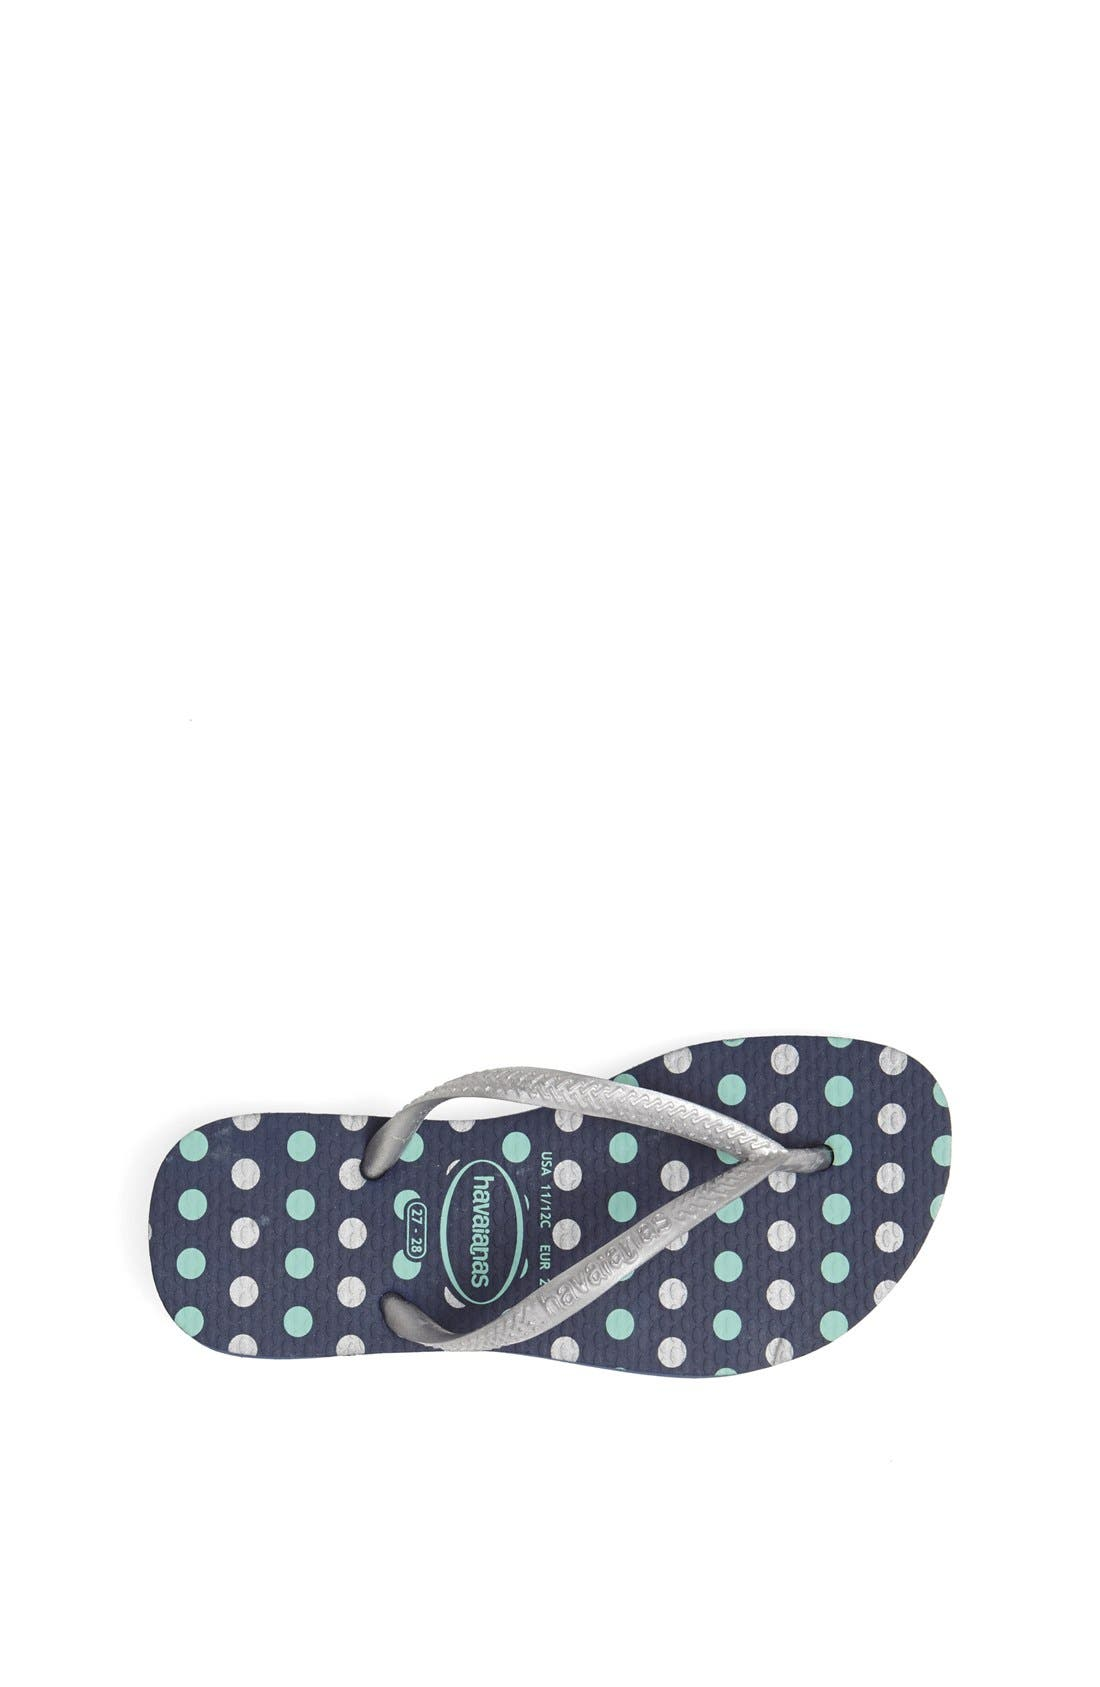 Alternate Image 3  - Havaianas 'Slim Fresh' Flip Flop (Toddler & Little Kid)